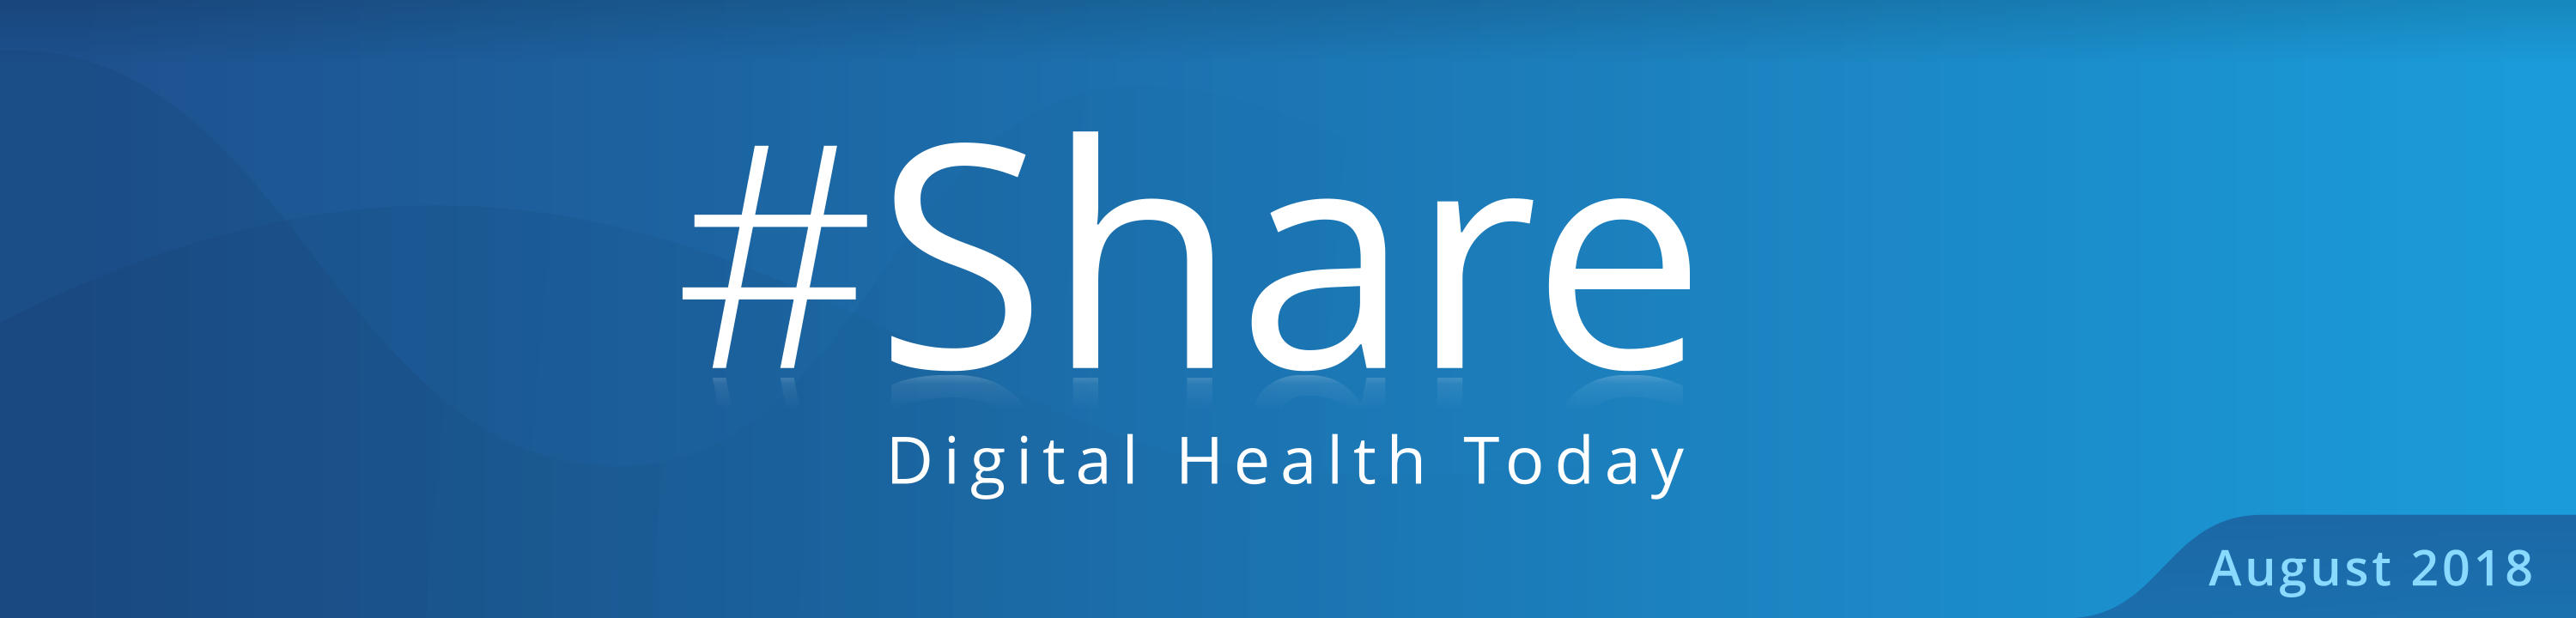 Share Digital Health Today